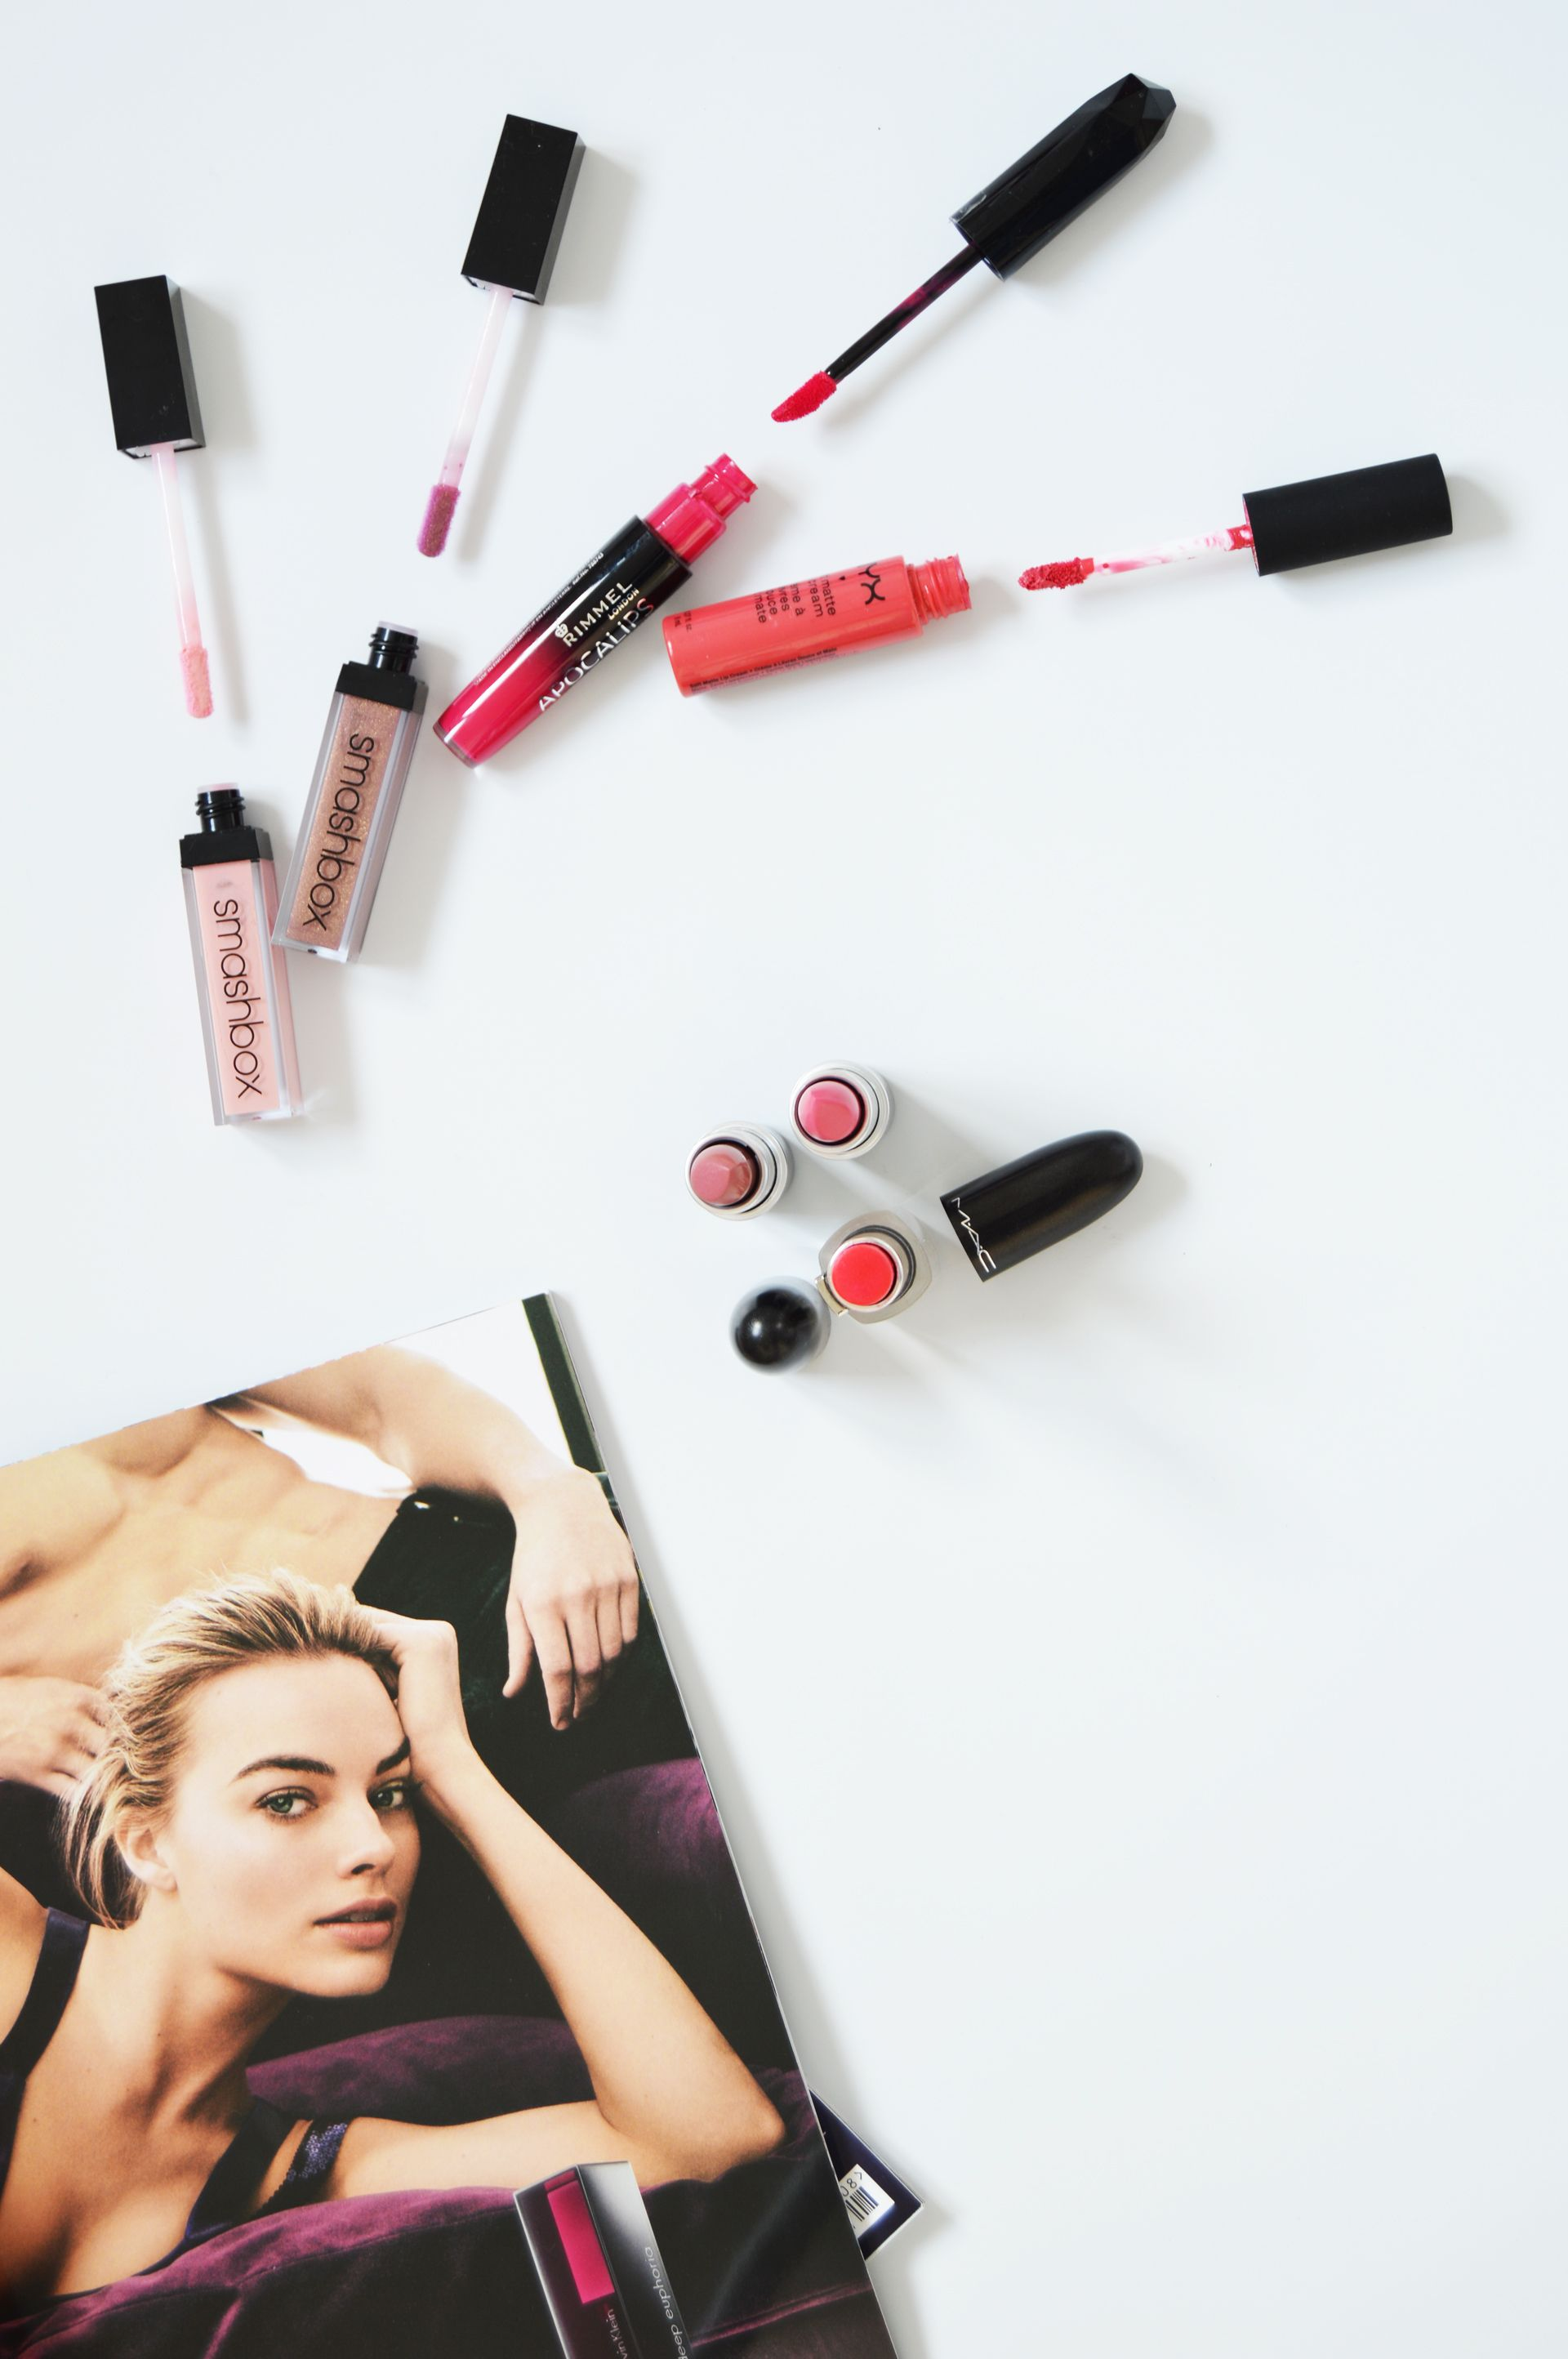 Summer lipstick colours are everywhere, there's something for everyone. Pinks, fuchsias or even nudes, you can find your perfect summer lipstick colour.